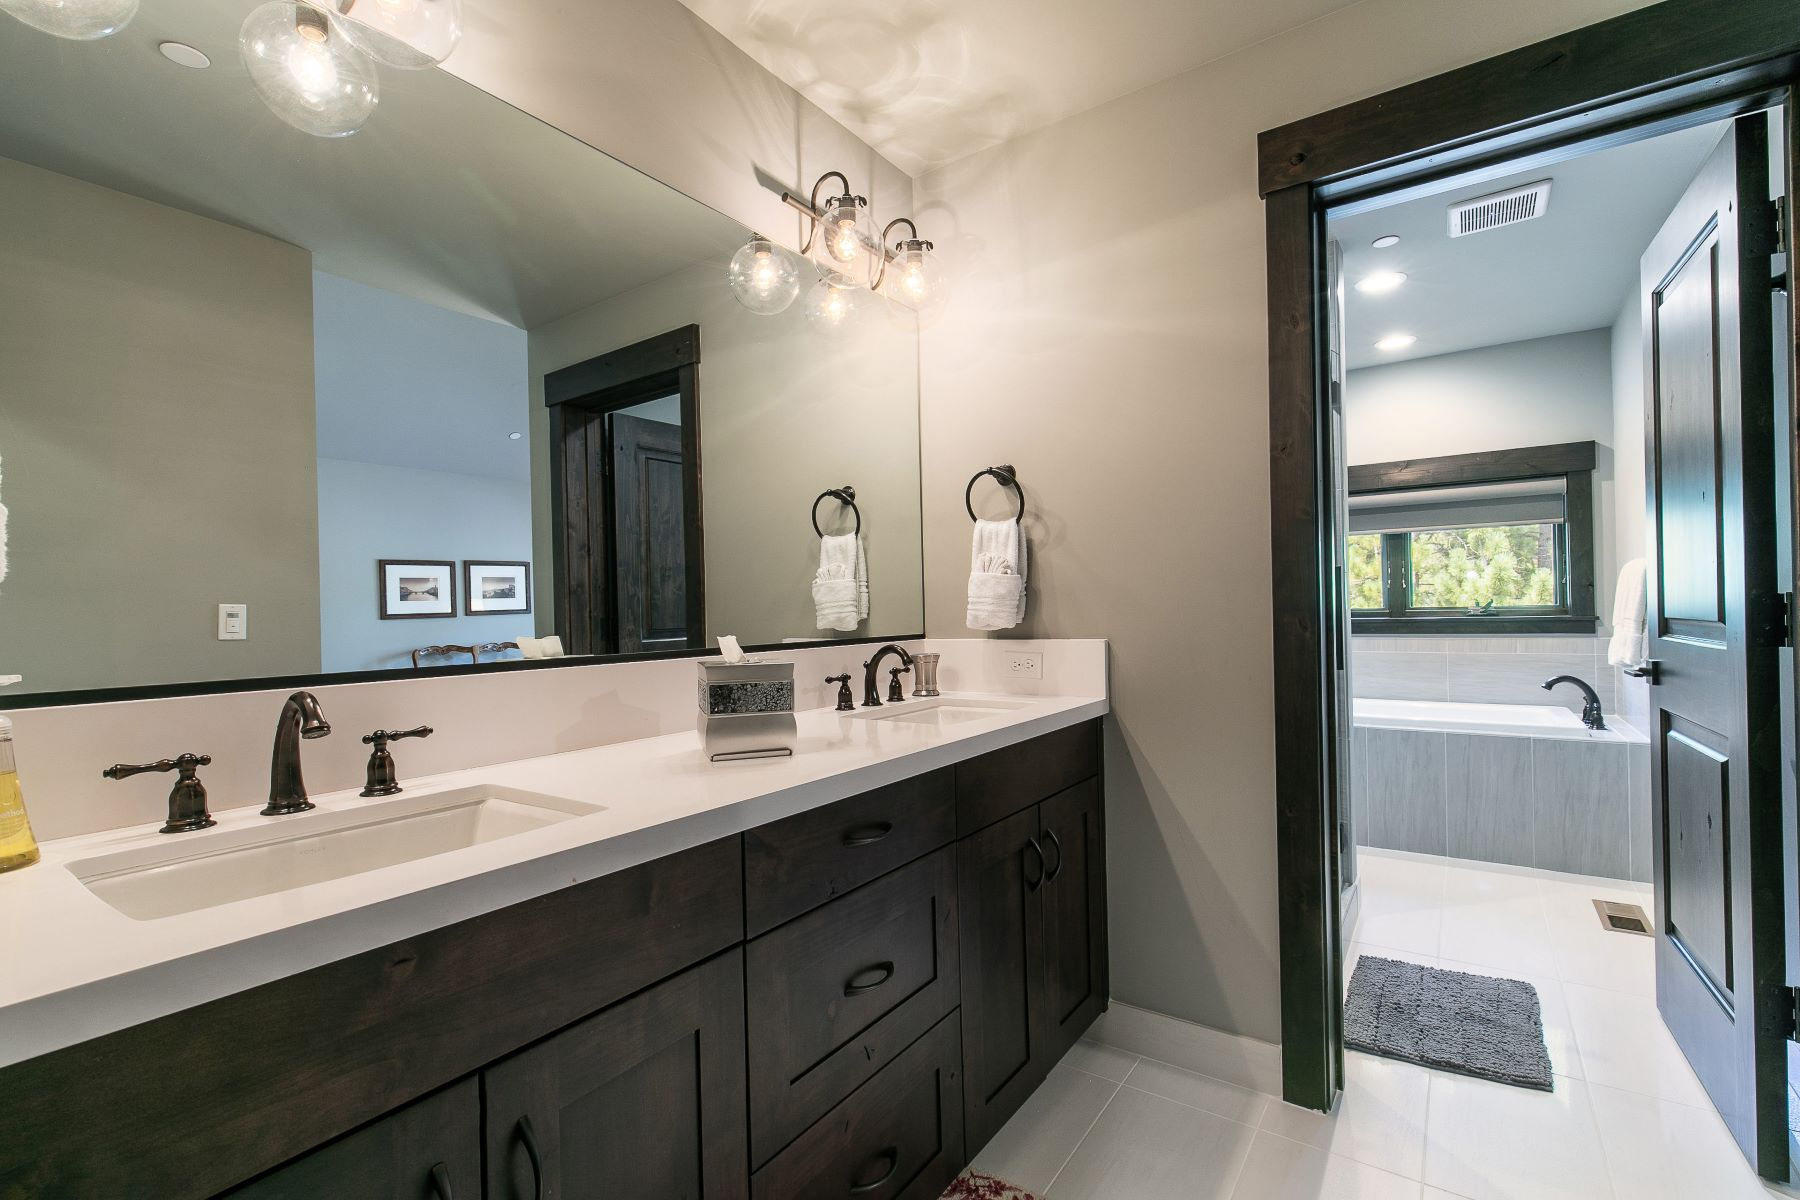 Additional photo for property listing at 9142 Heartwood, Truckee, CA 9142 Heartwood Drive Truckee, California 96161 Estados Unidos